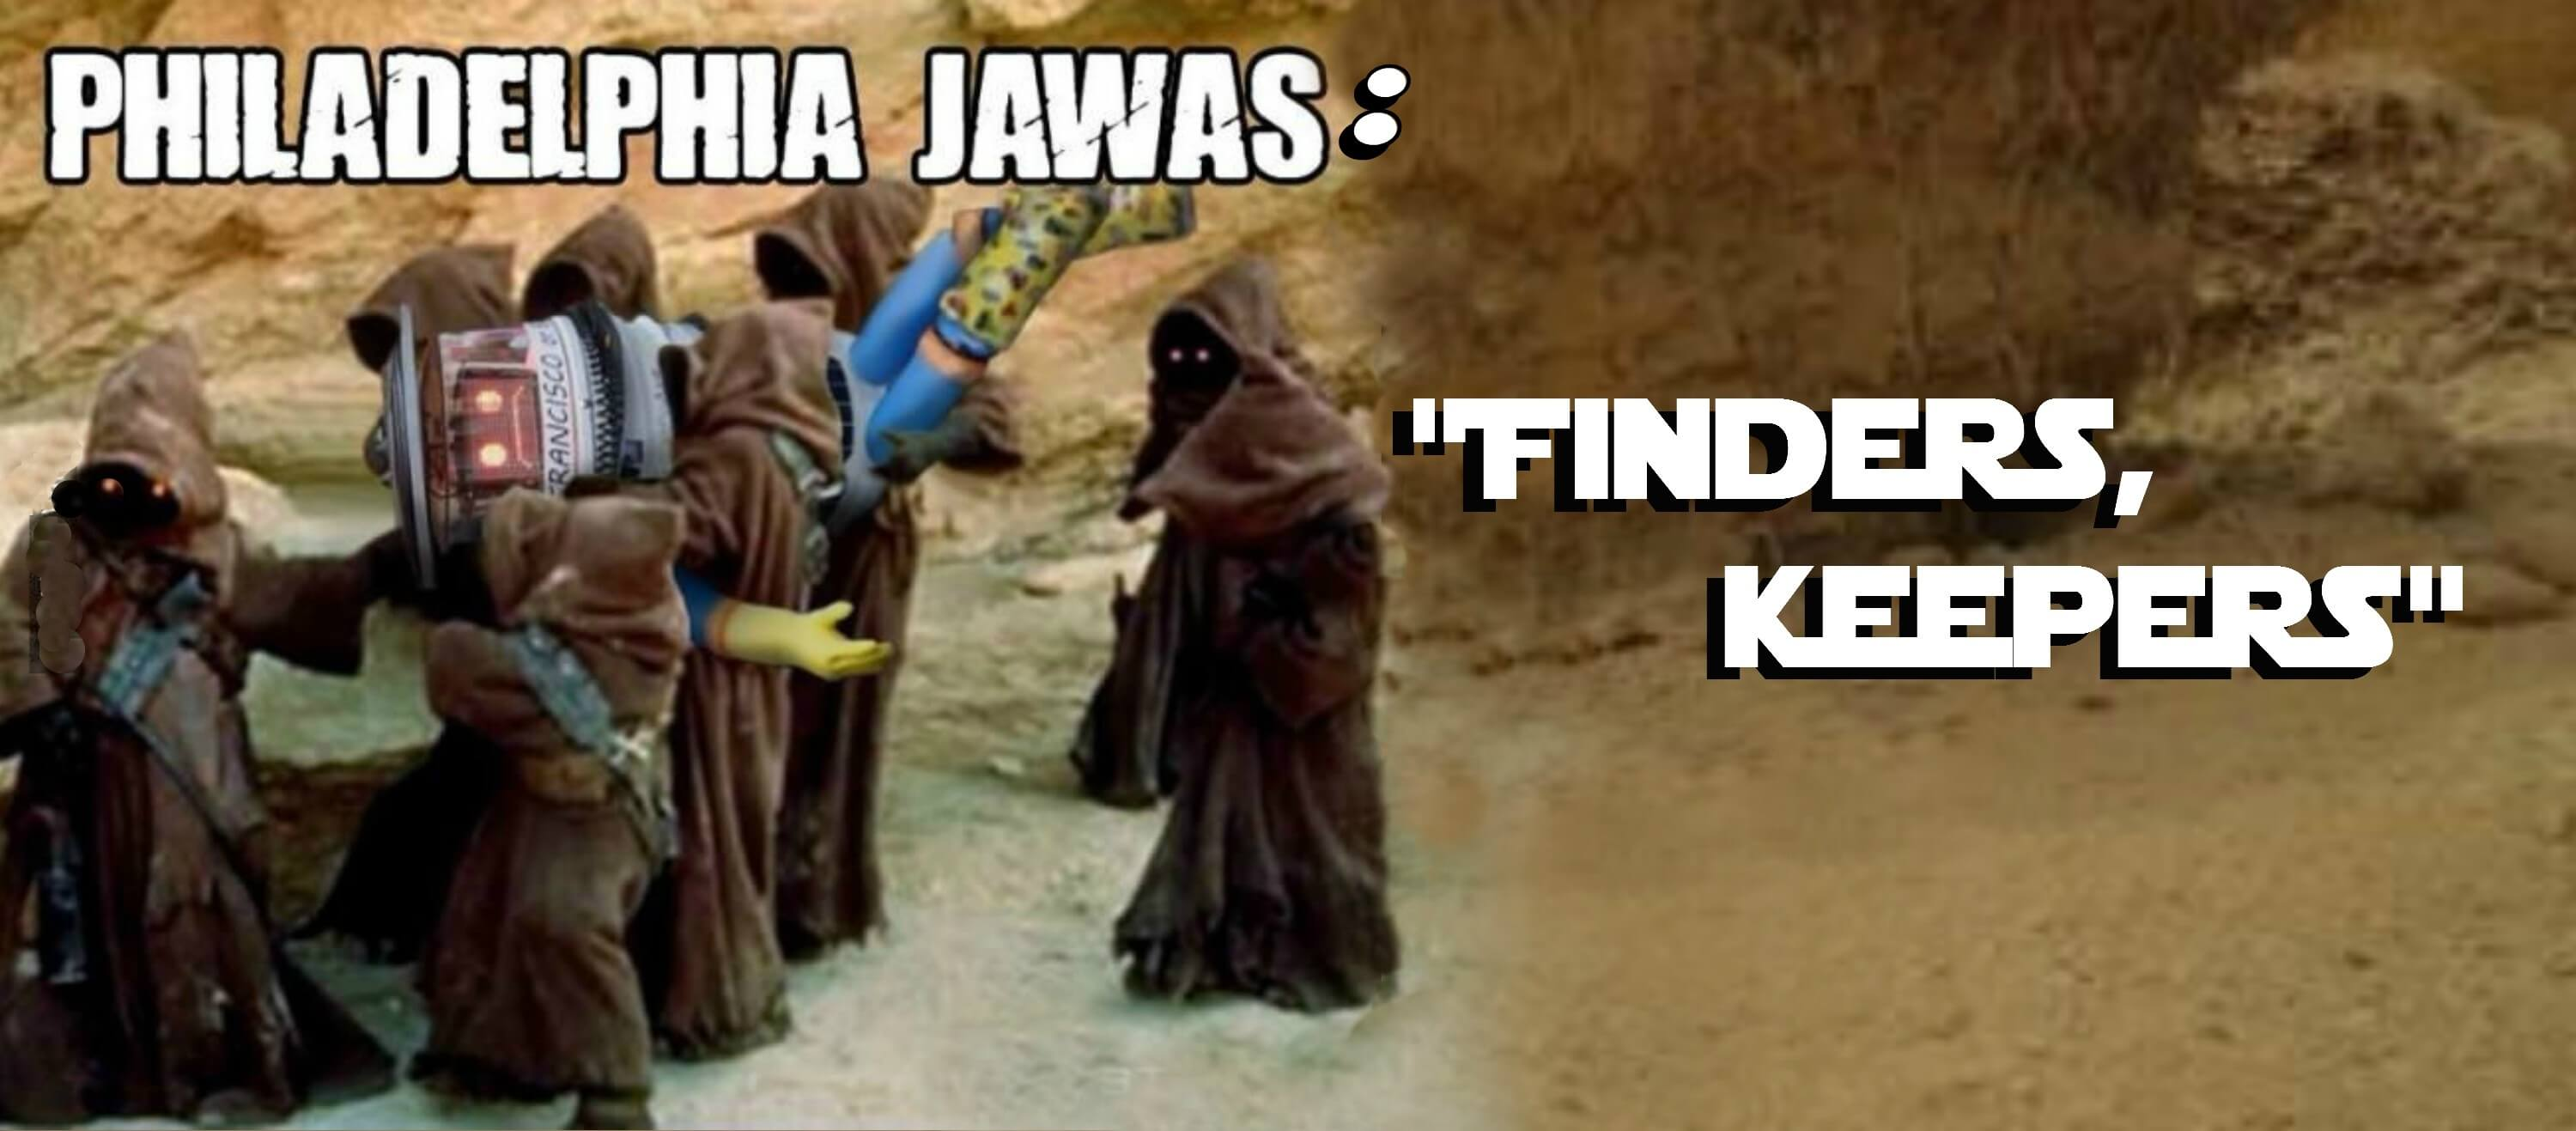 Eastfallslocal philly jawas long text